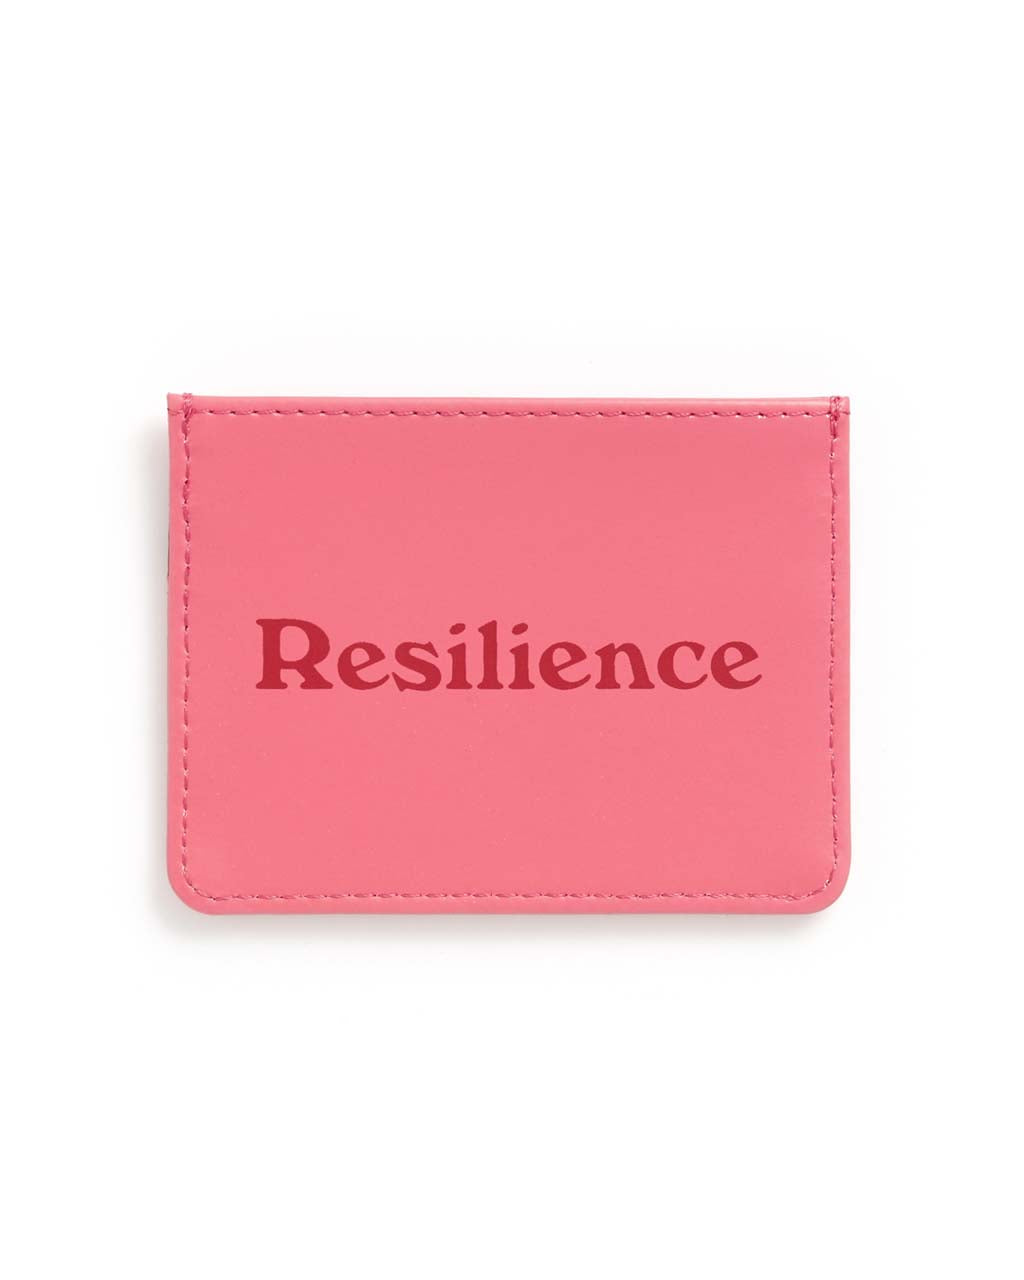 This Get It Together Card Case comes in pink, with 'Resilience' printed in red on the front.